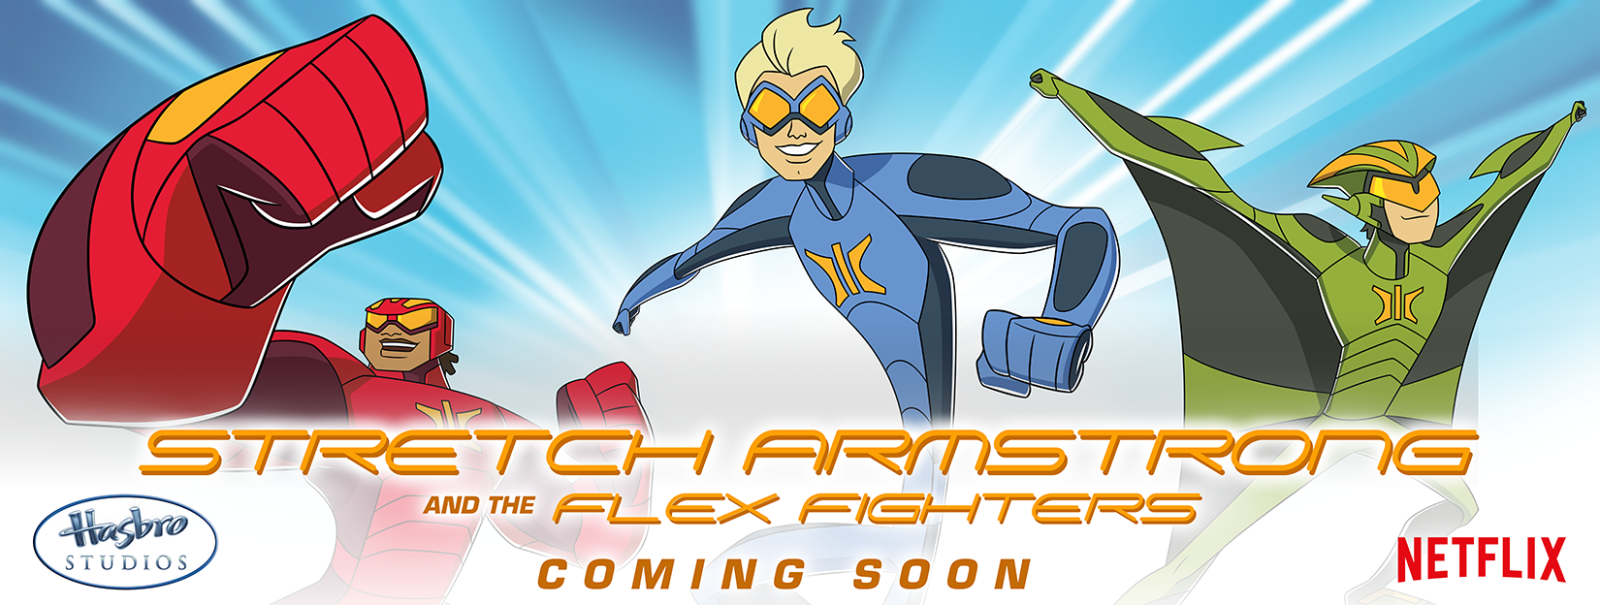 stretch-armstrong-and-the-flex-fighters-animated-series-coming-to-netflix11